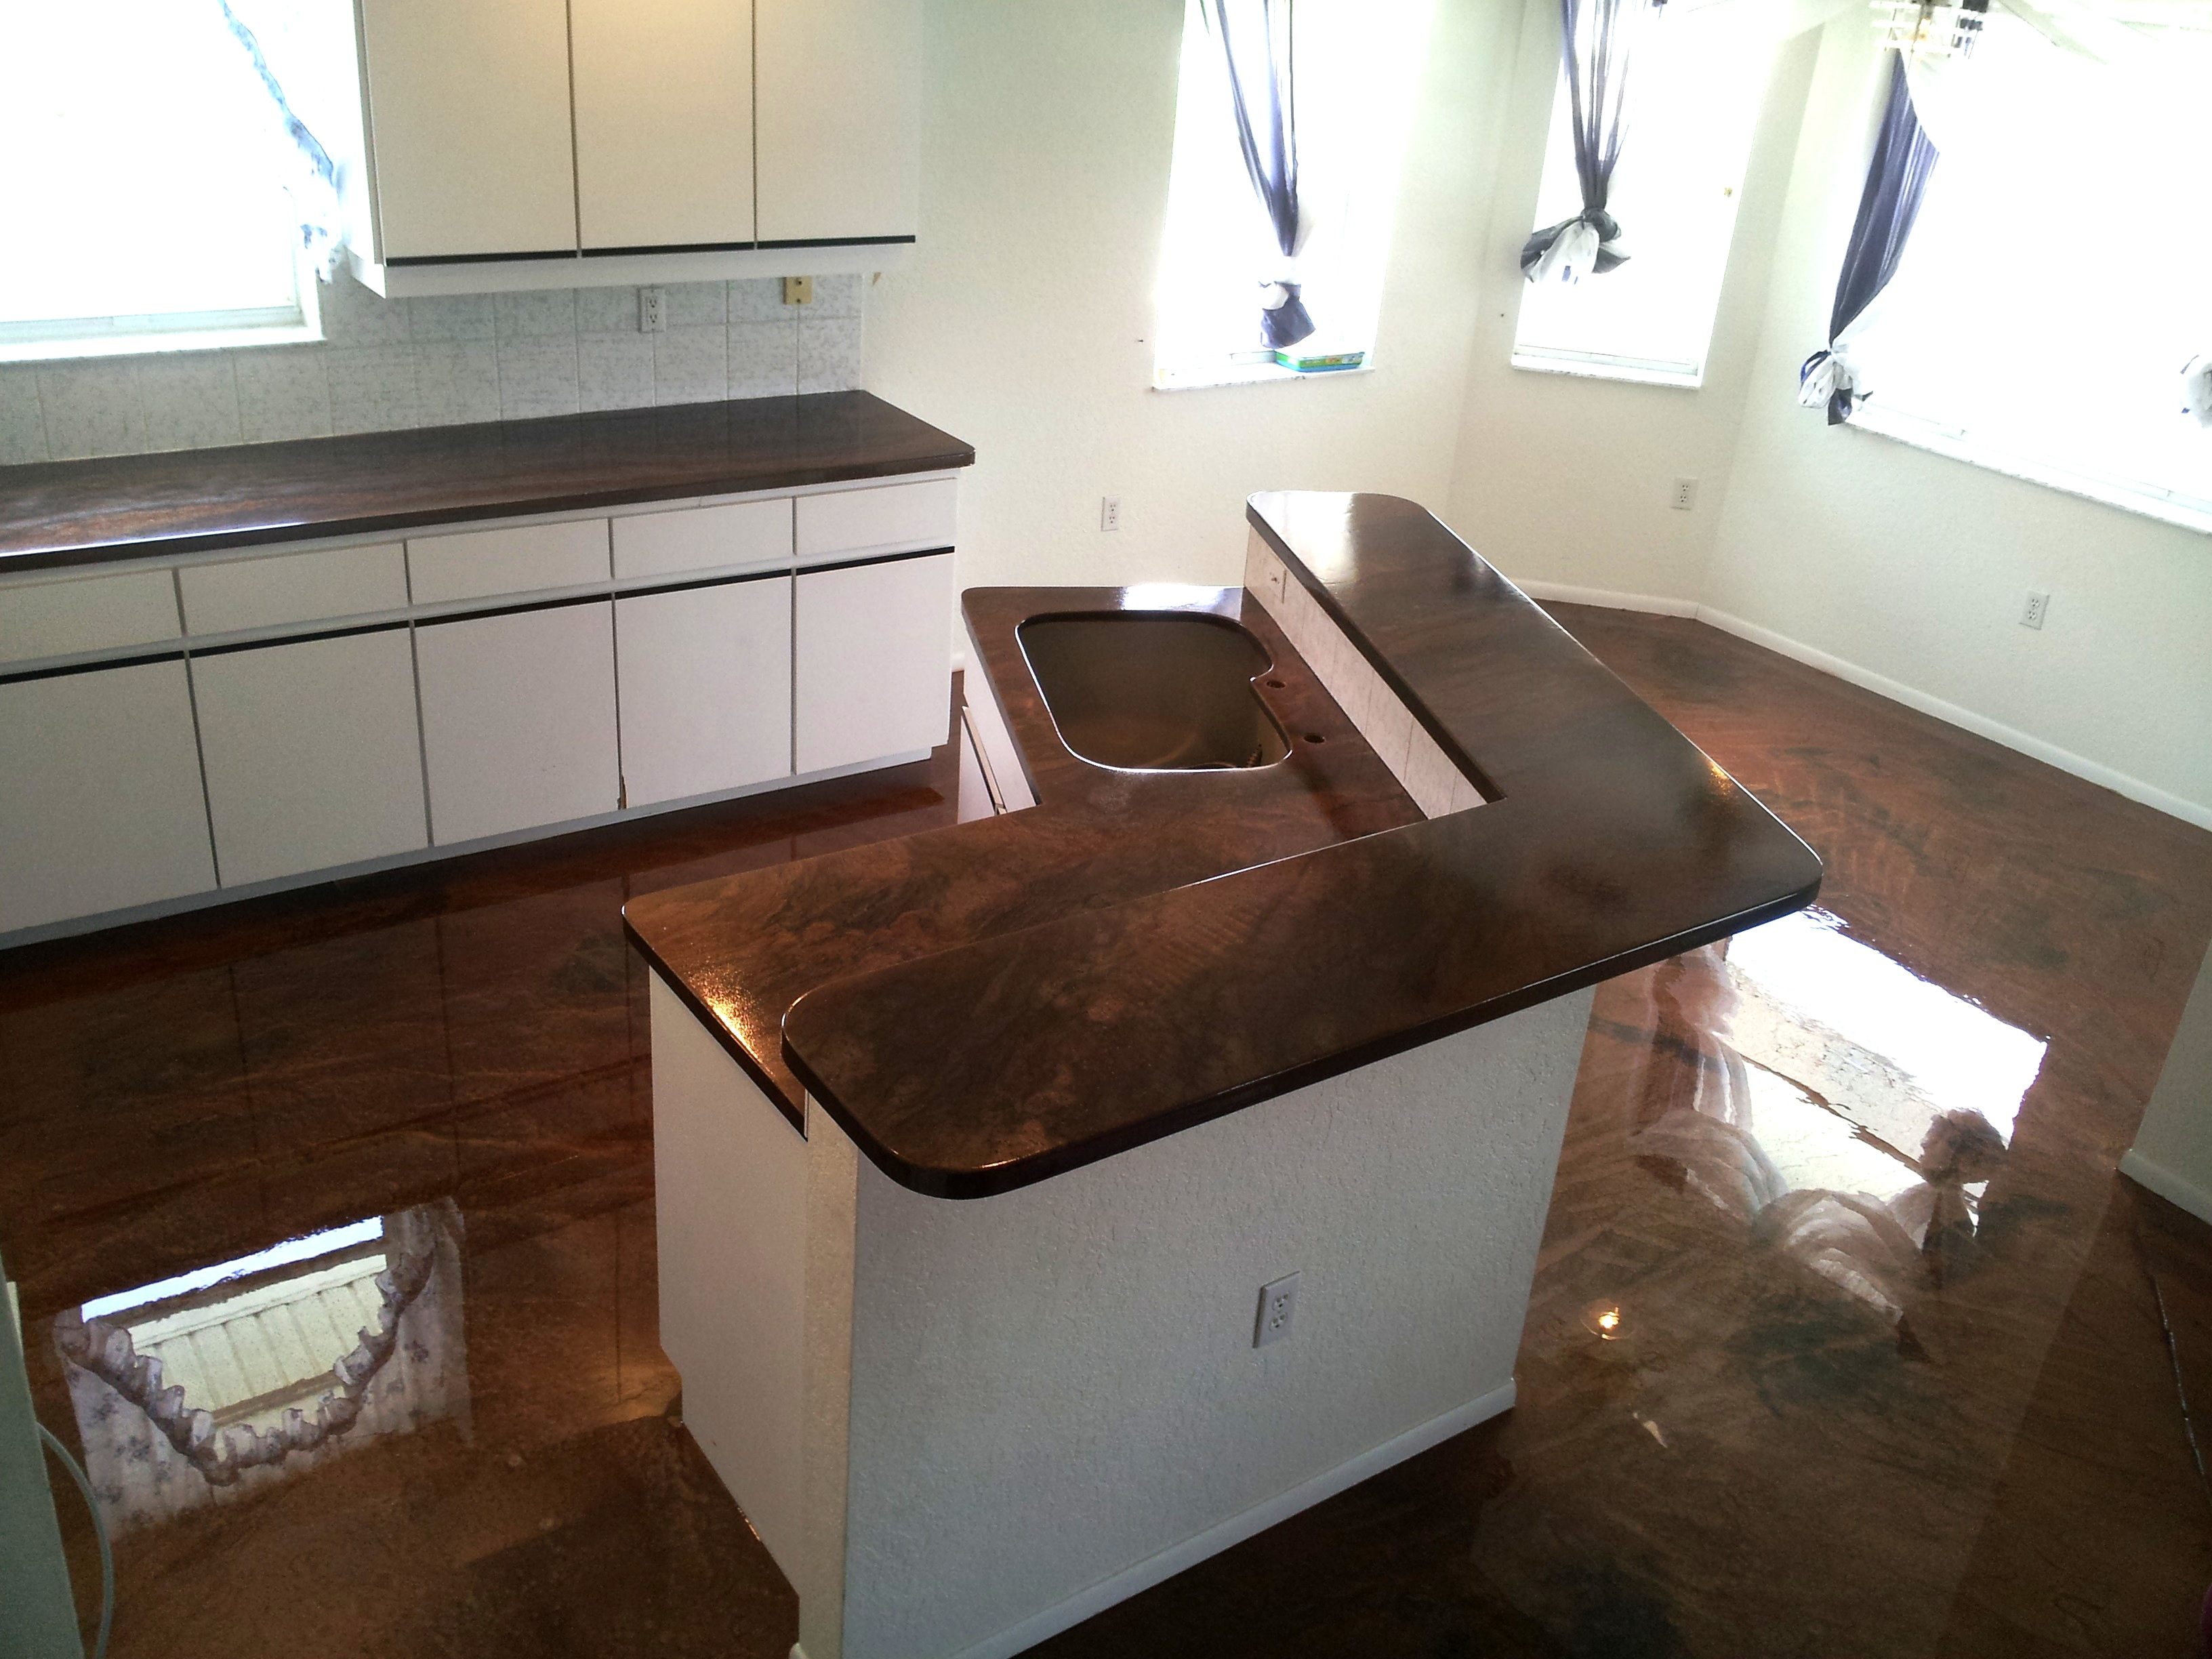 bronze-copper-floor-countertop.jpg